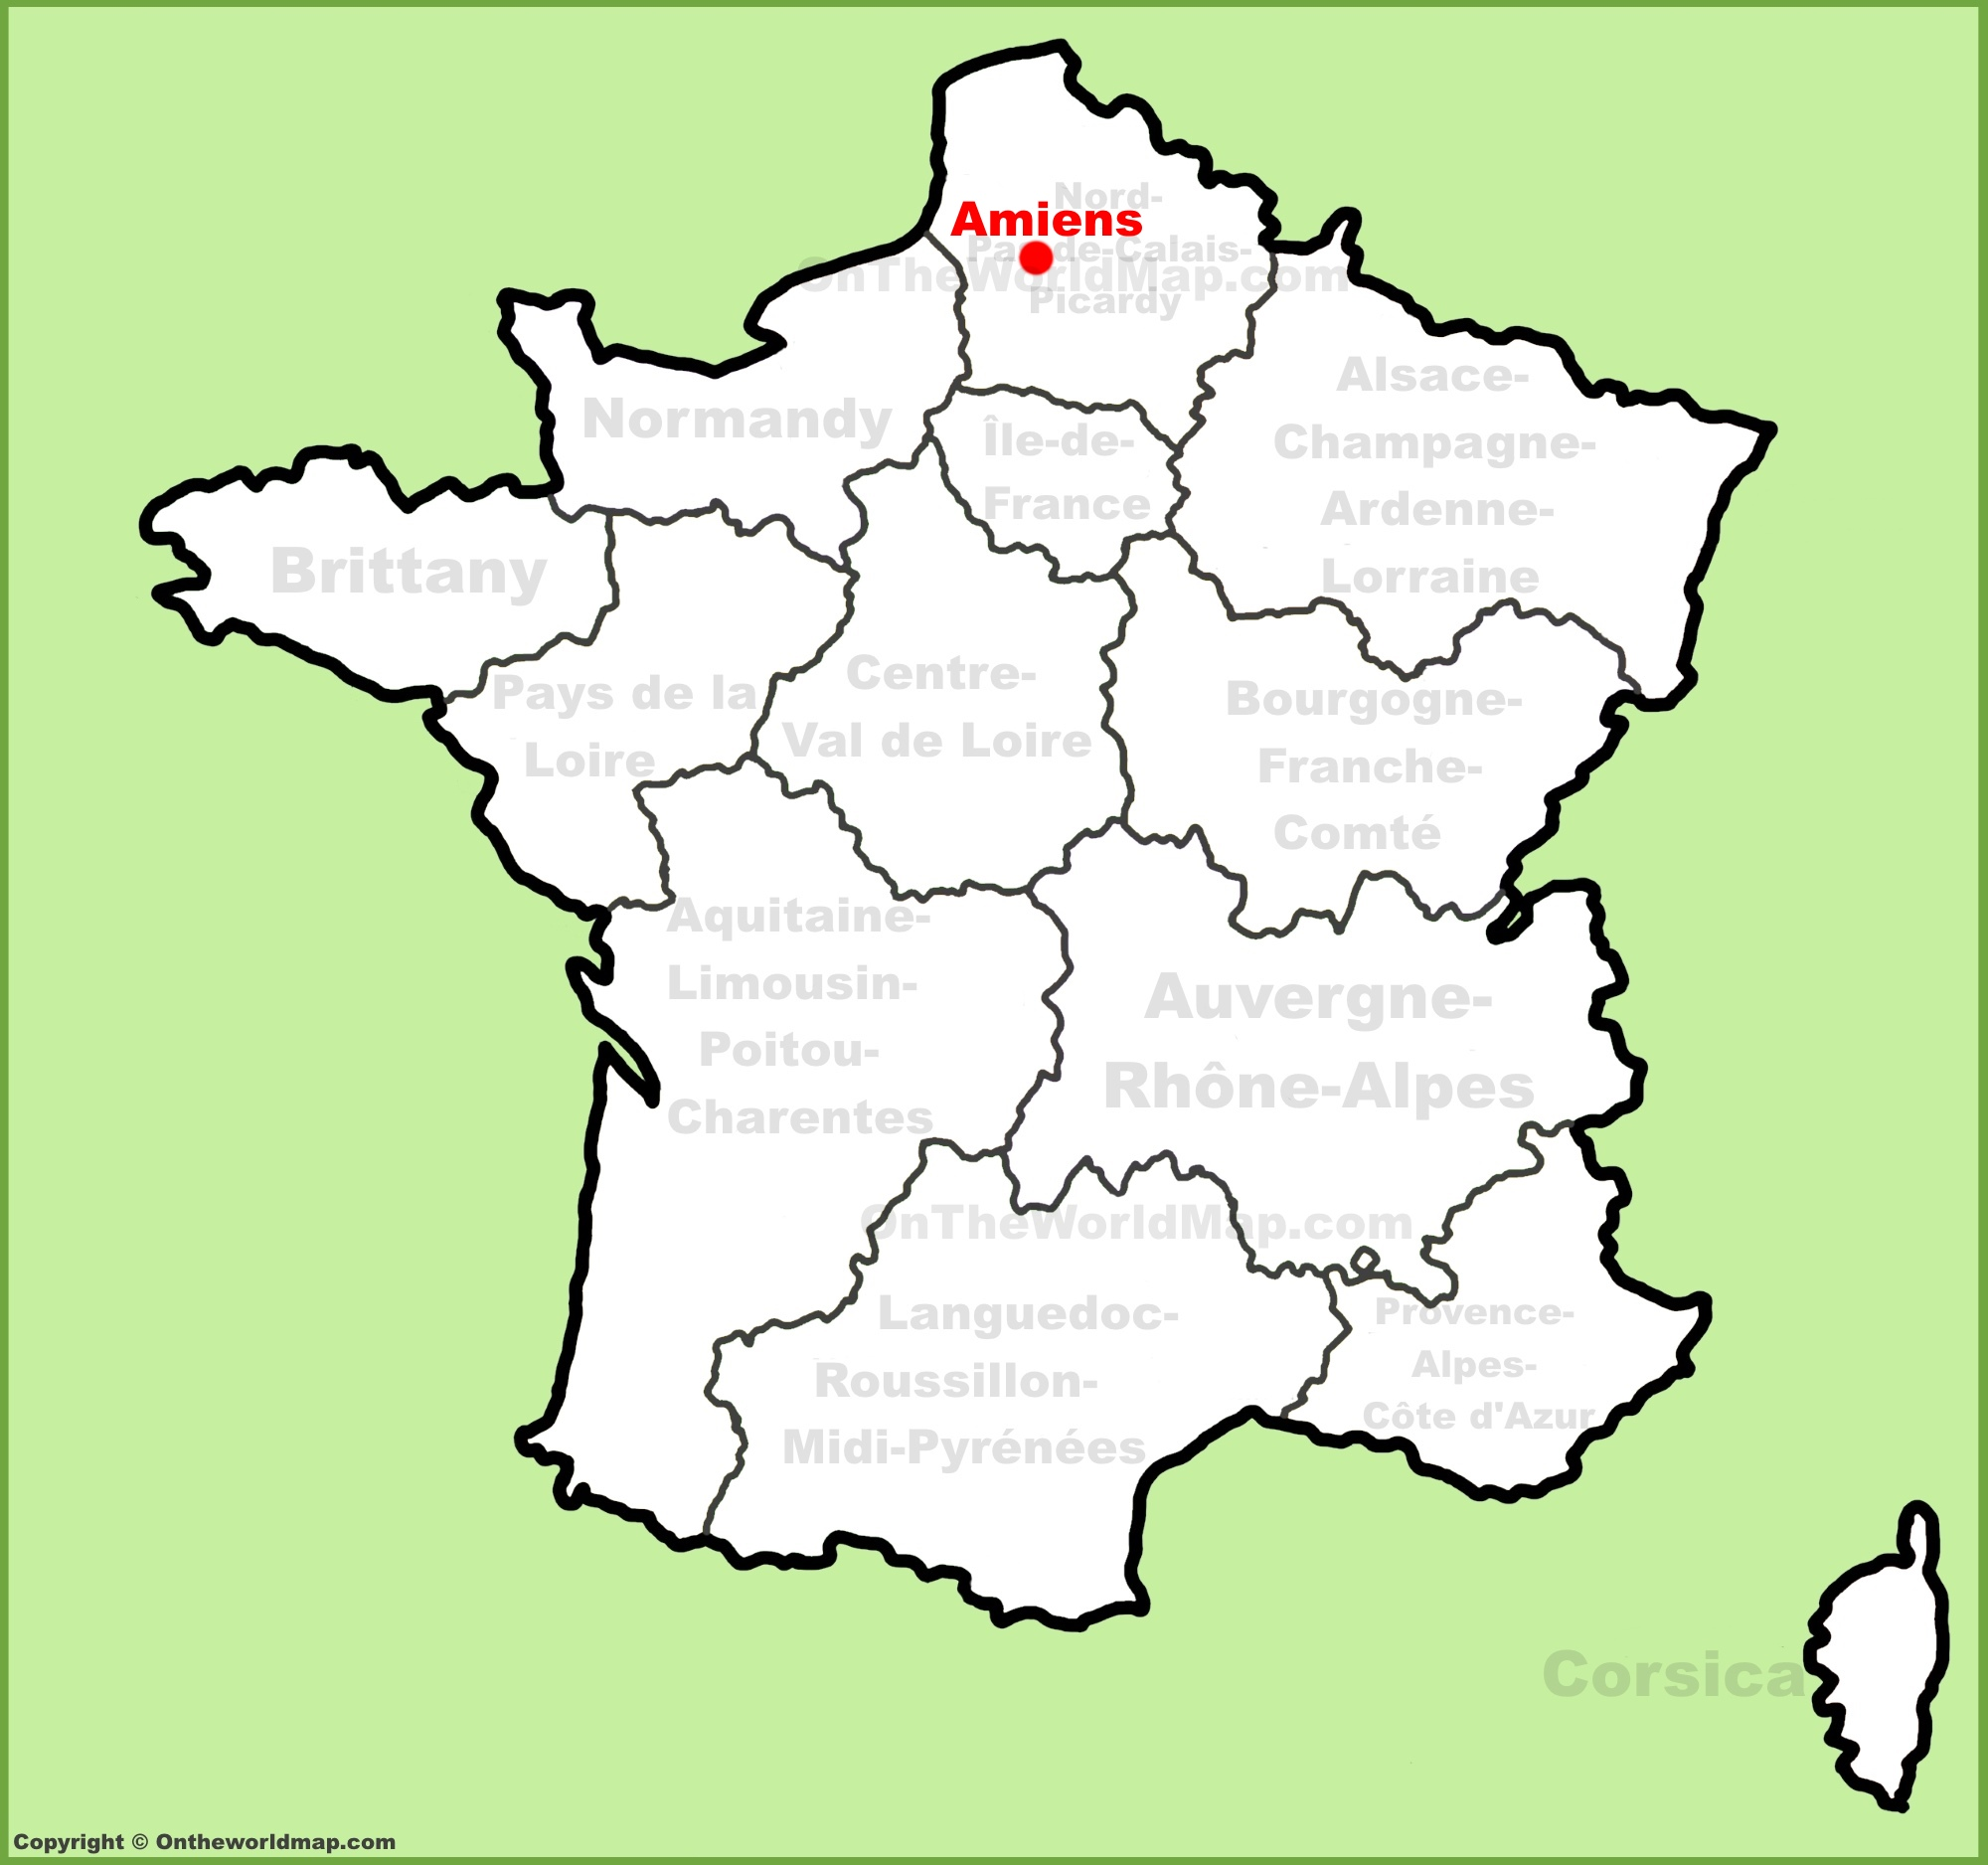 amiens location on the france map. Black Bedroom Furniture Sets. Home Design Ideas